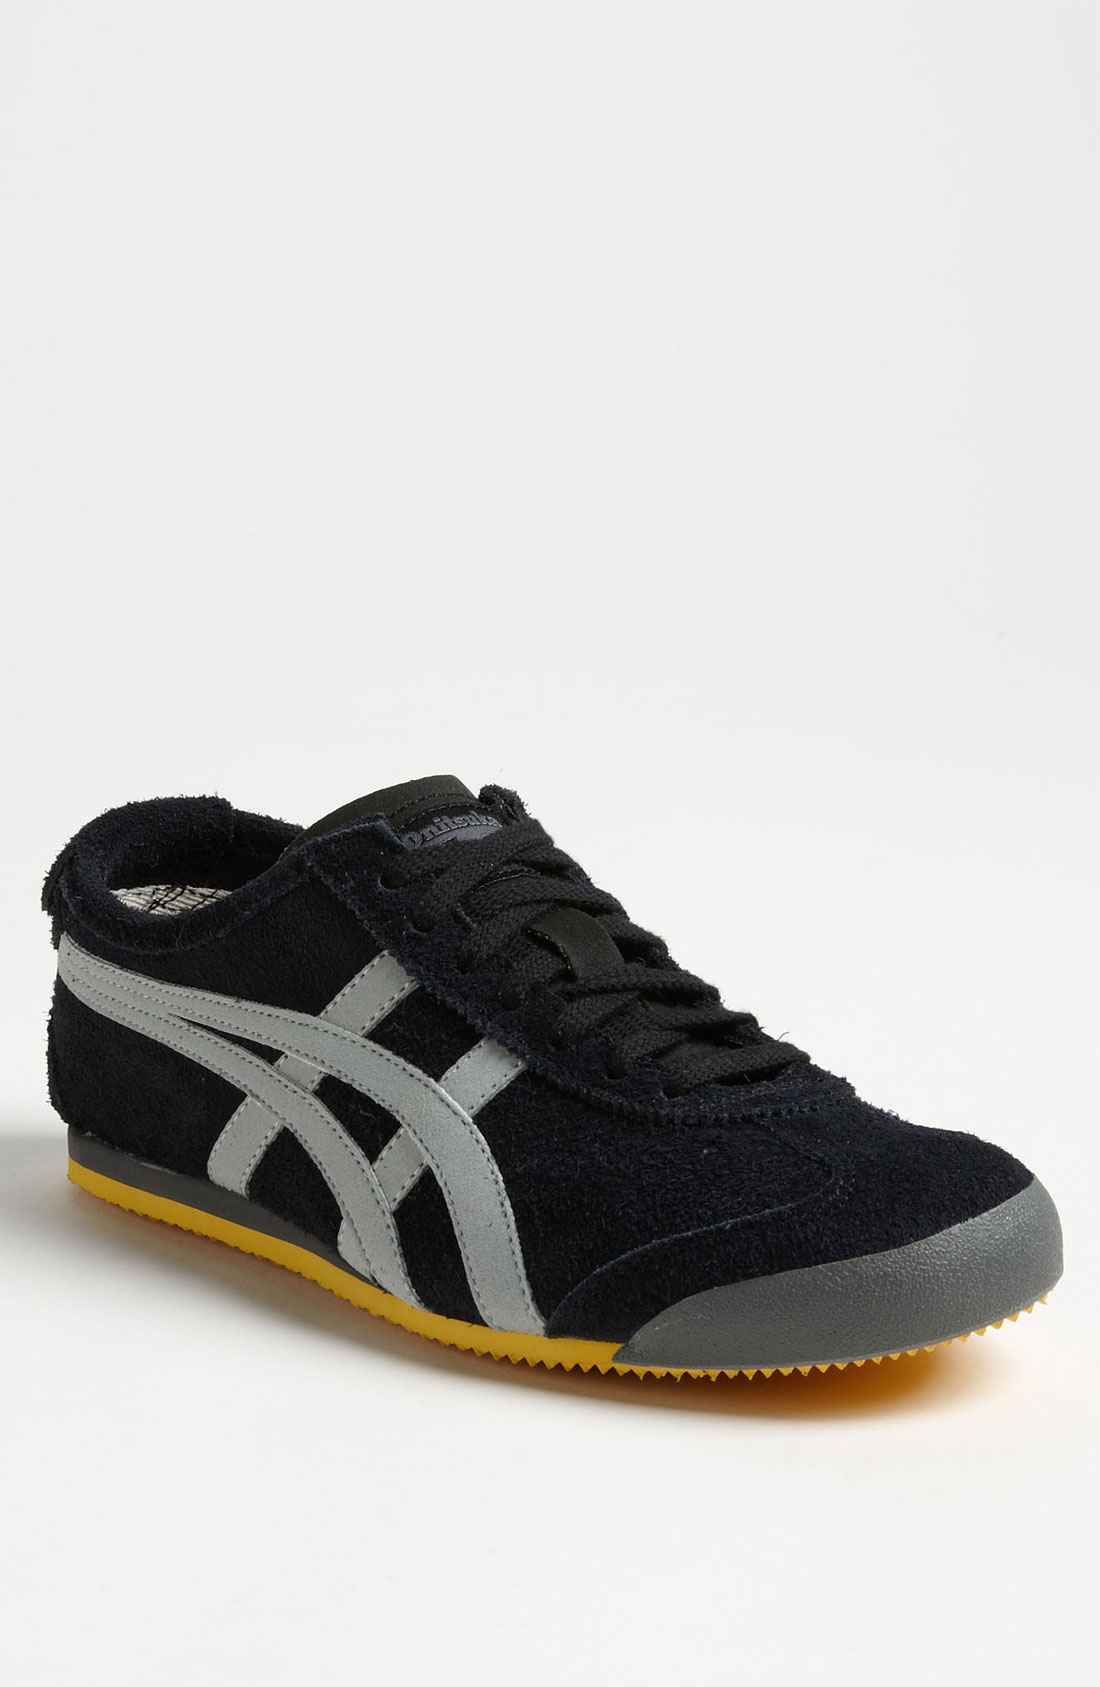 onitsuka tiger mexico 66 suede sneaker in black for men black light grey lyst. Black Bedroom Furniture Sets. Home Design Ideas